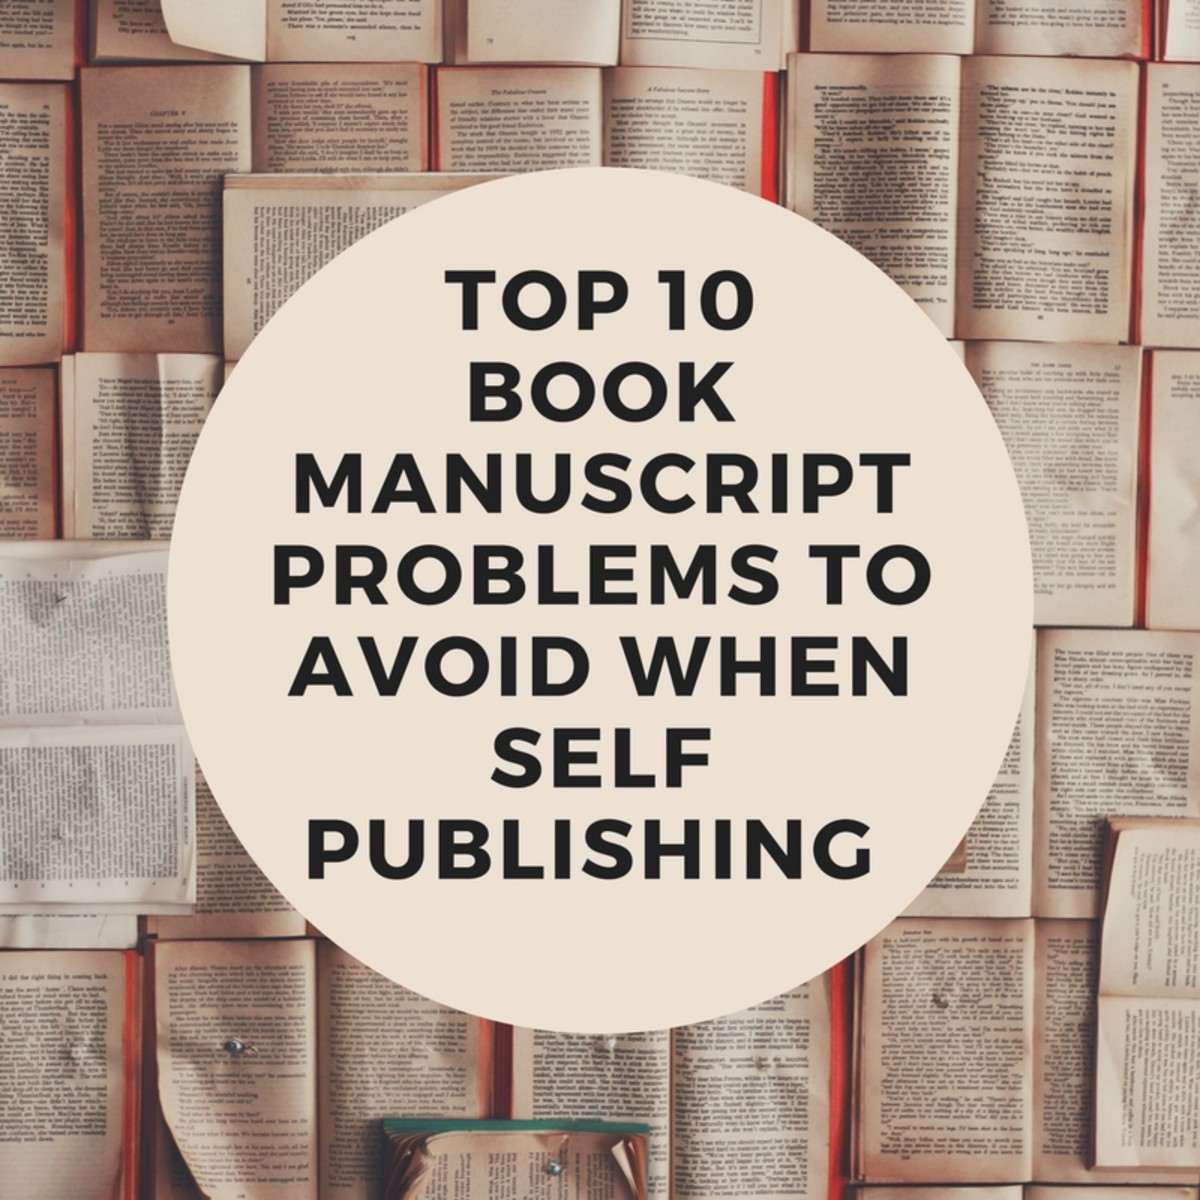 Top 10 Book Manuscript Problems to Avoid When Self Publishing